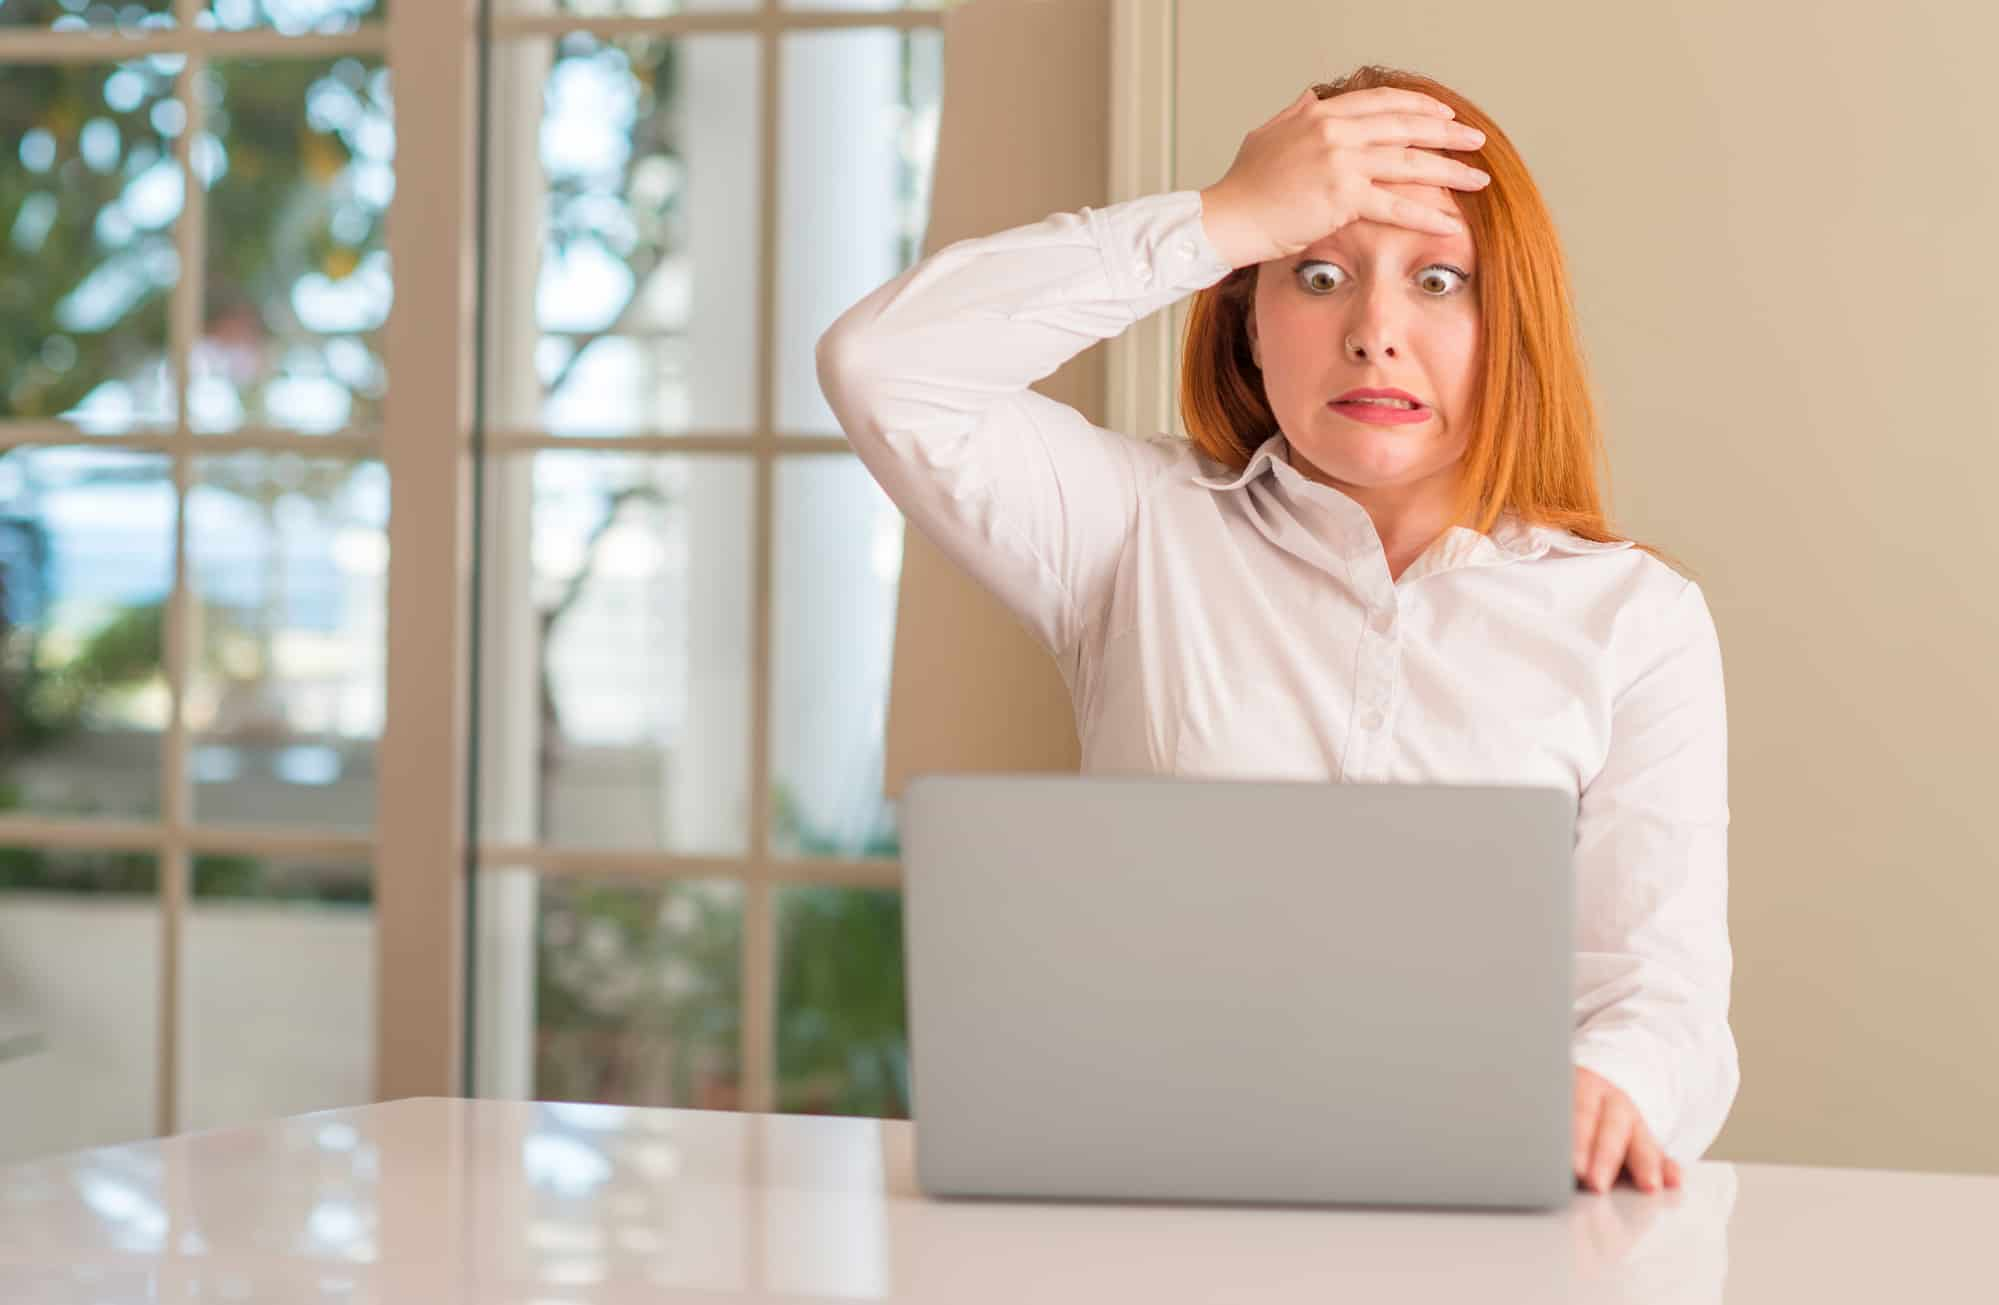 Mid 30s caucasian woman with long read hair, wearing a white shirt. She is stressed out, with one hand slapped against her forehead as she looks down at her laptop screen. This is the featured image for an article about Website Design Mistakes.